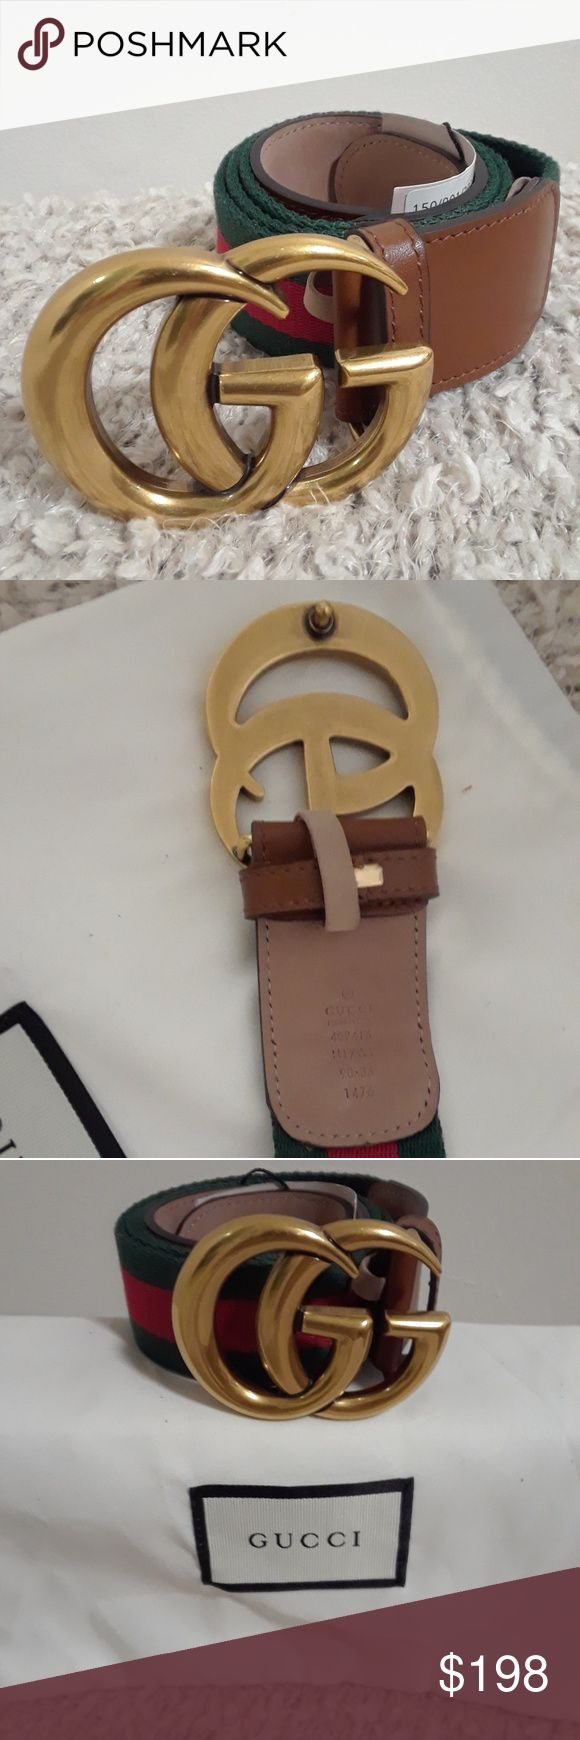 Brand new Gucci belt Brand new Gucci brown belt with double G gold buckle with red and green strips Gucci Accessories Belts